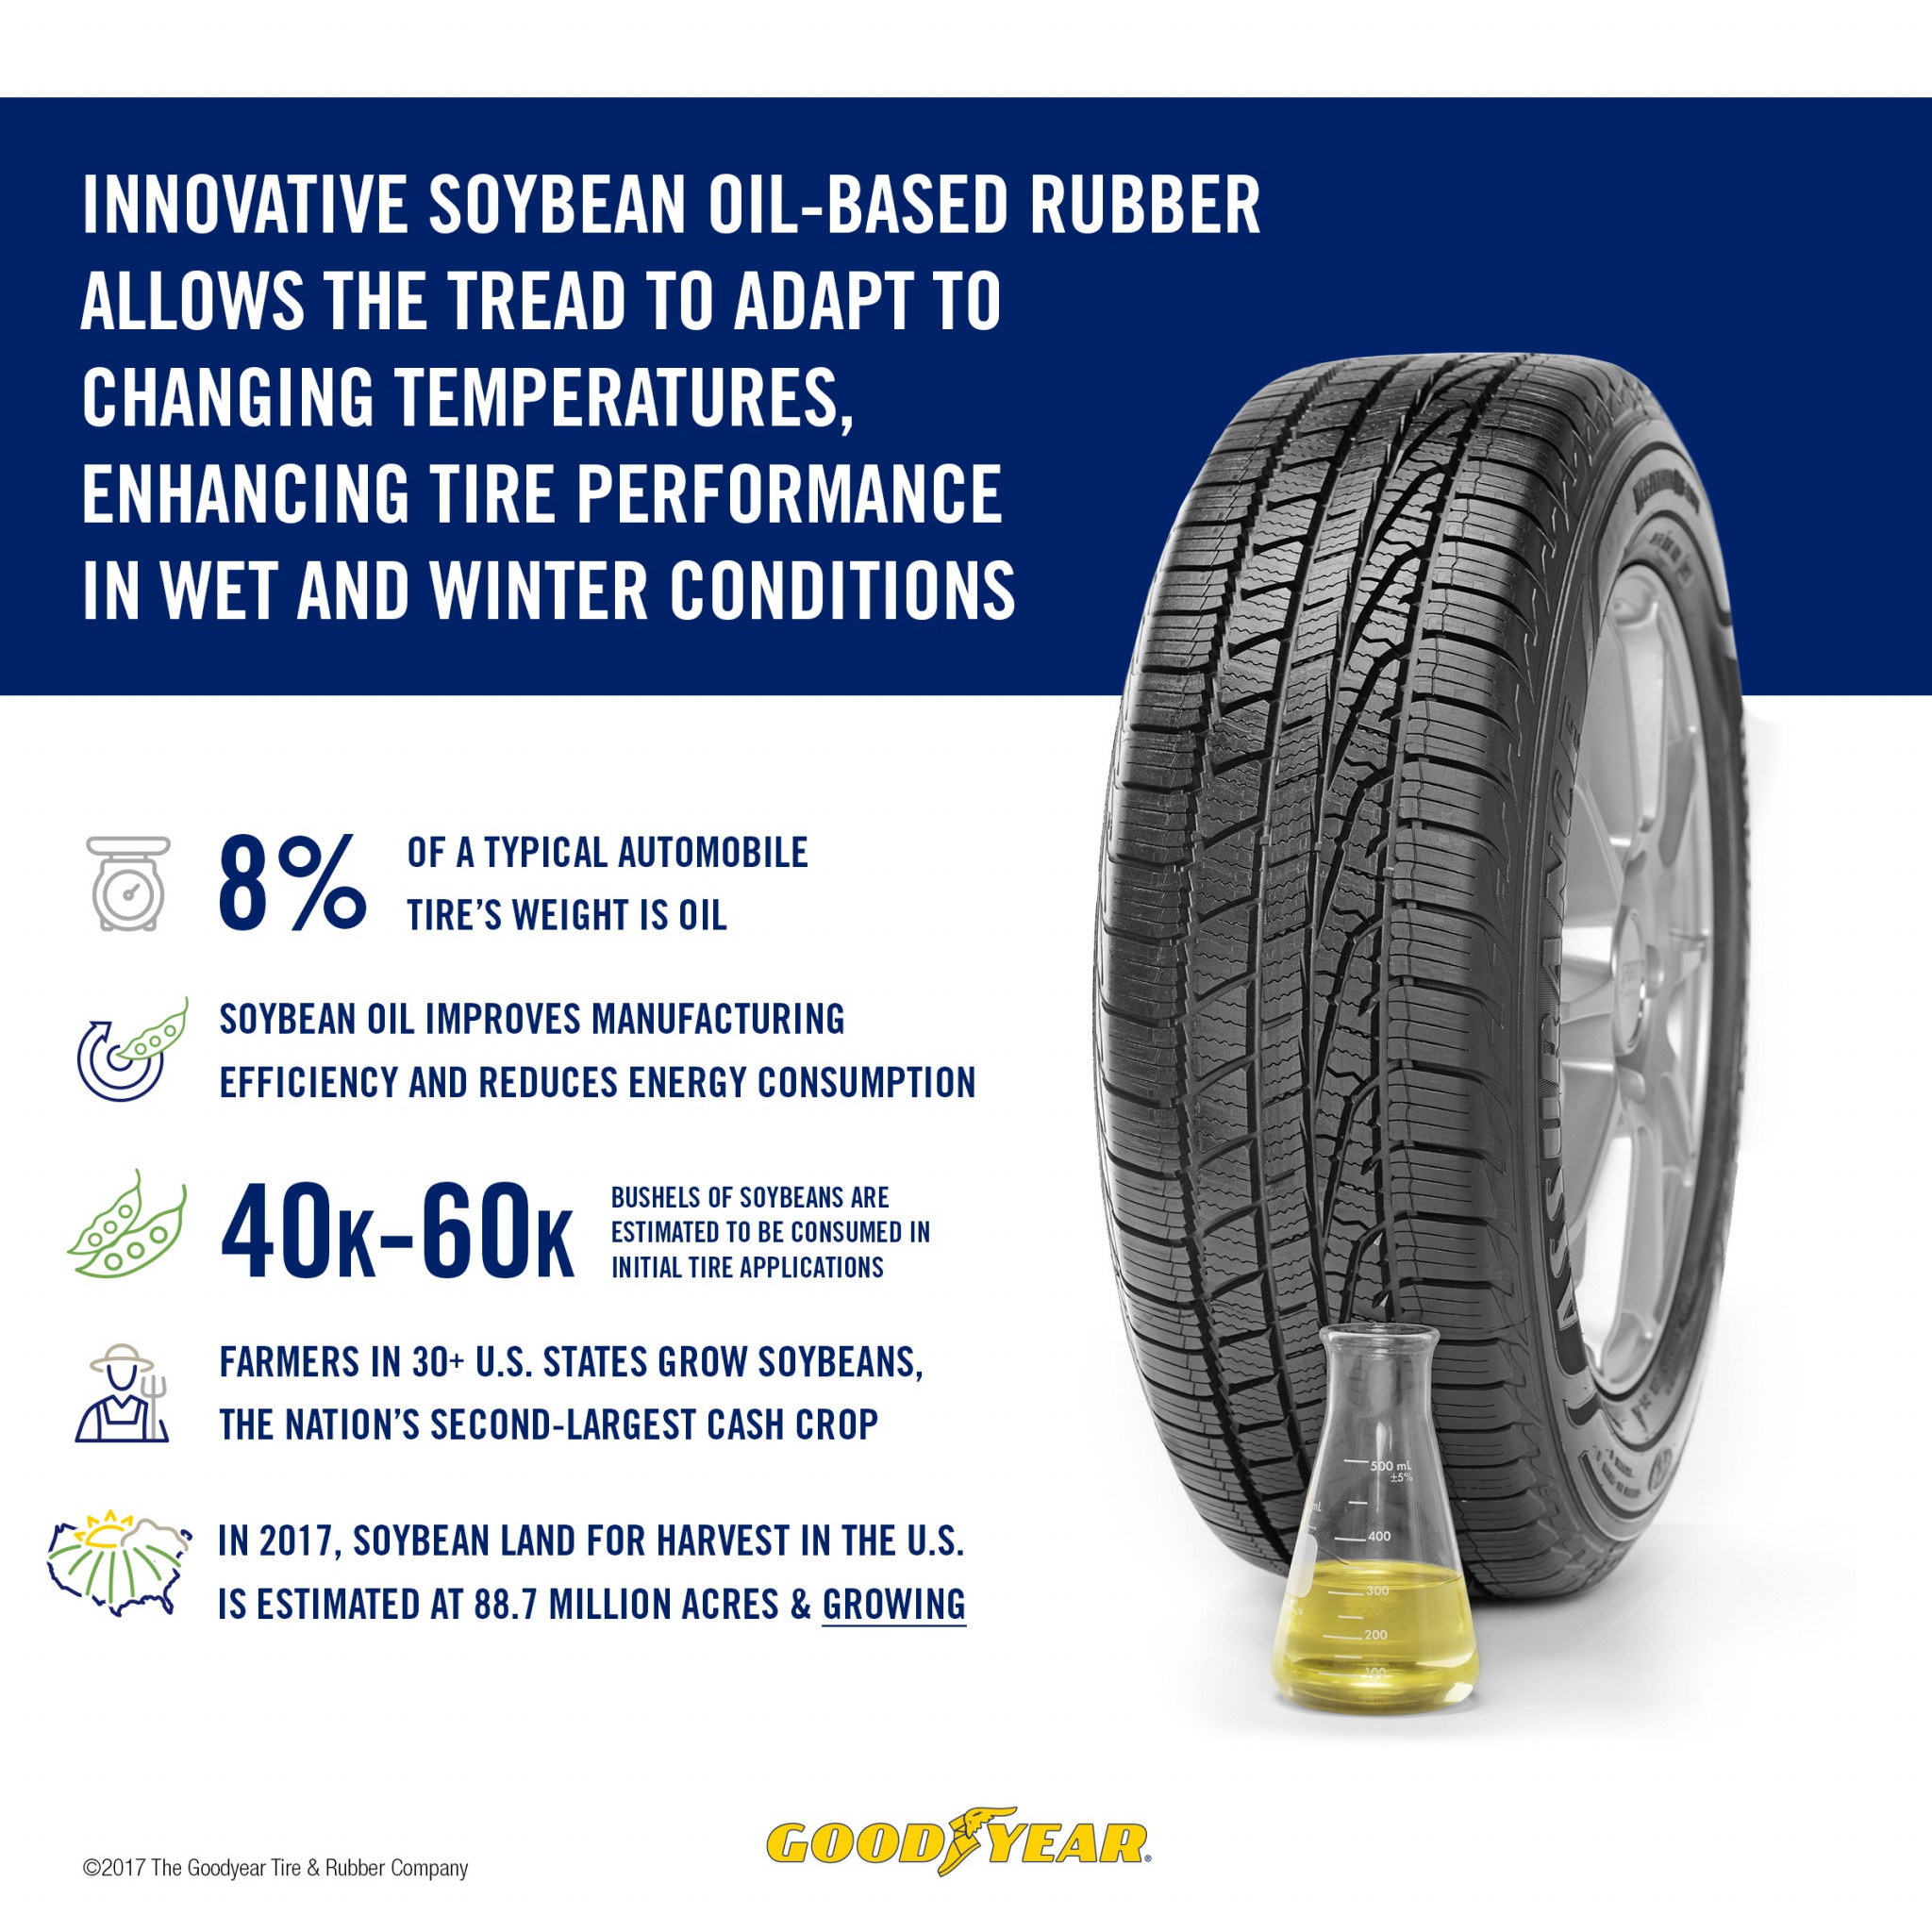 overview of goodyear tire rubber company Get information, facts, and pictures about the goodyear tire & rubber company at encyclopediacom make research projects and school reports about the goodyear tire & rubber company easy with credible articles from our free, online encyclopedia and dictionary.